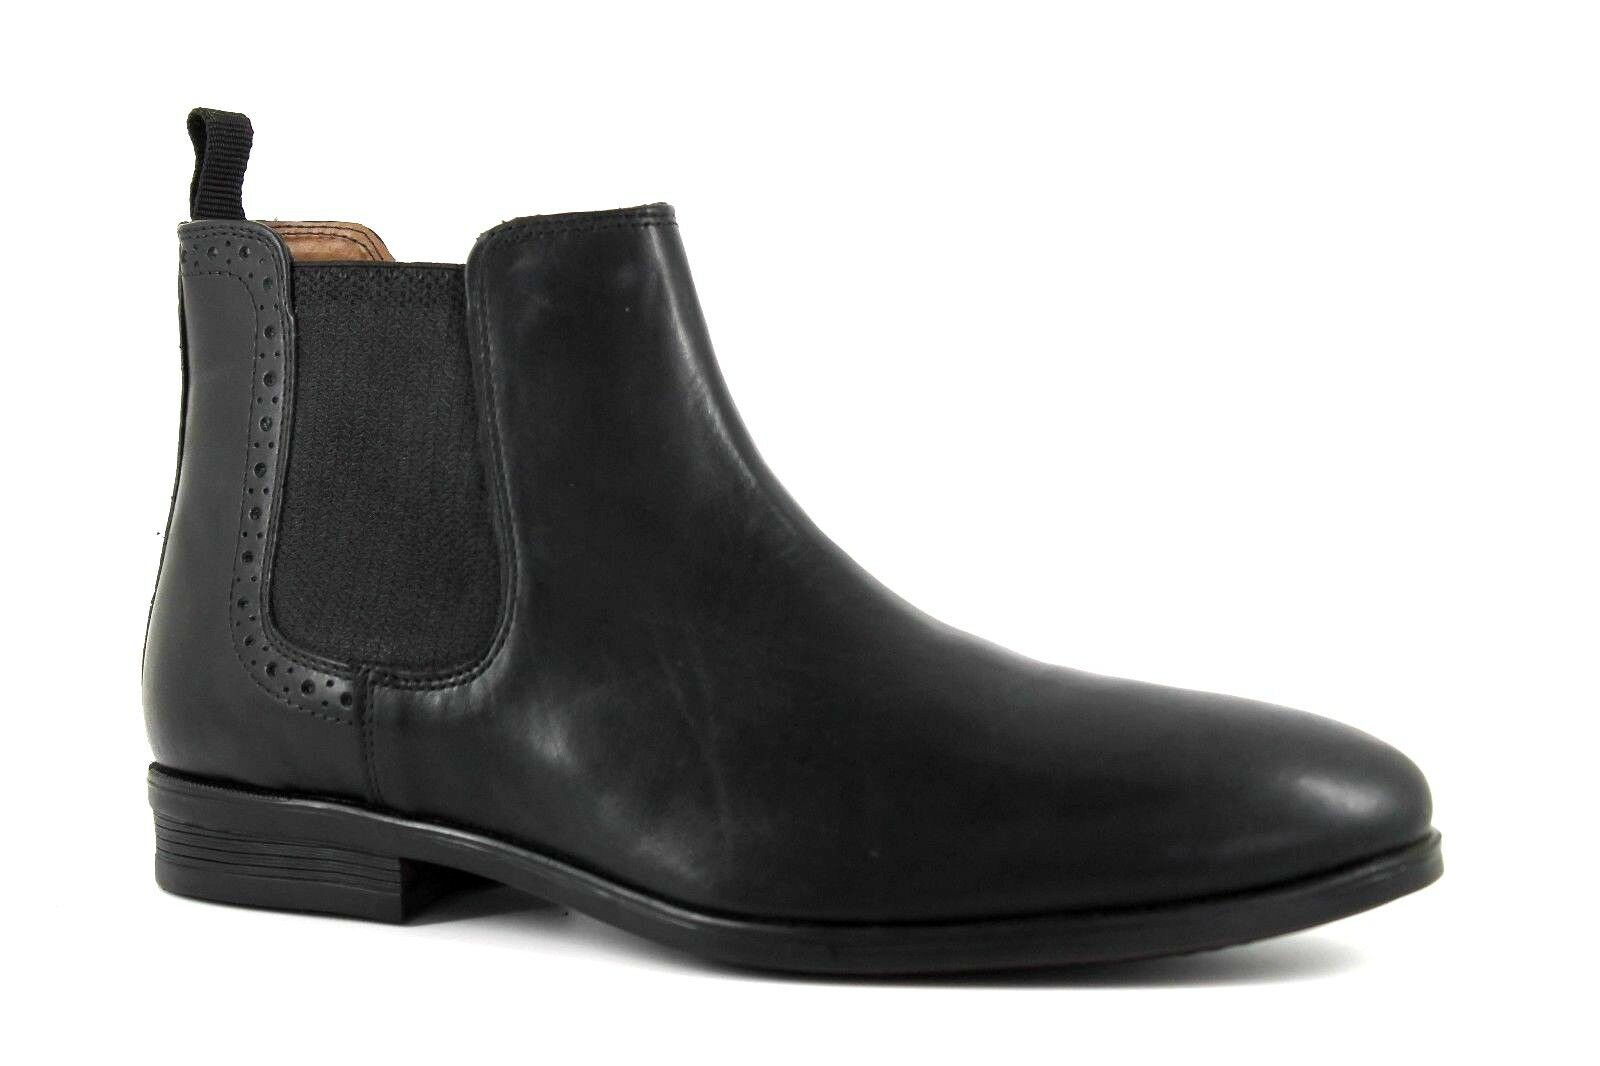 Burton Mens UK 11 EU 45 Black Leather Pull On Low Heel Chelsea Ankle Boots